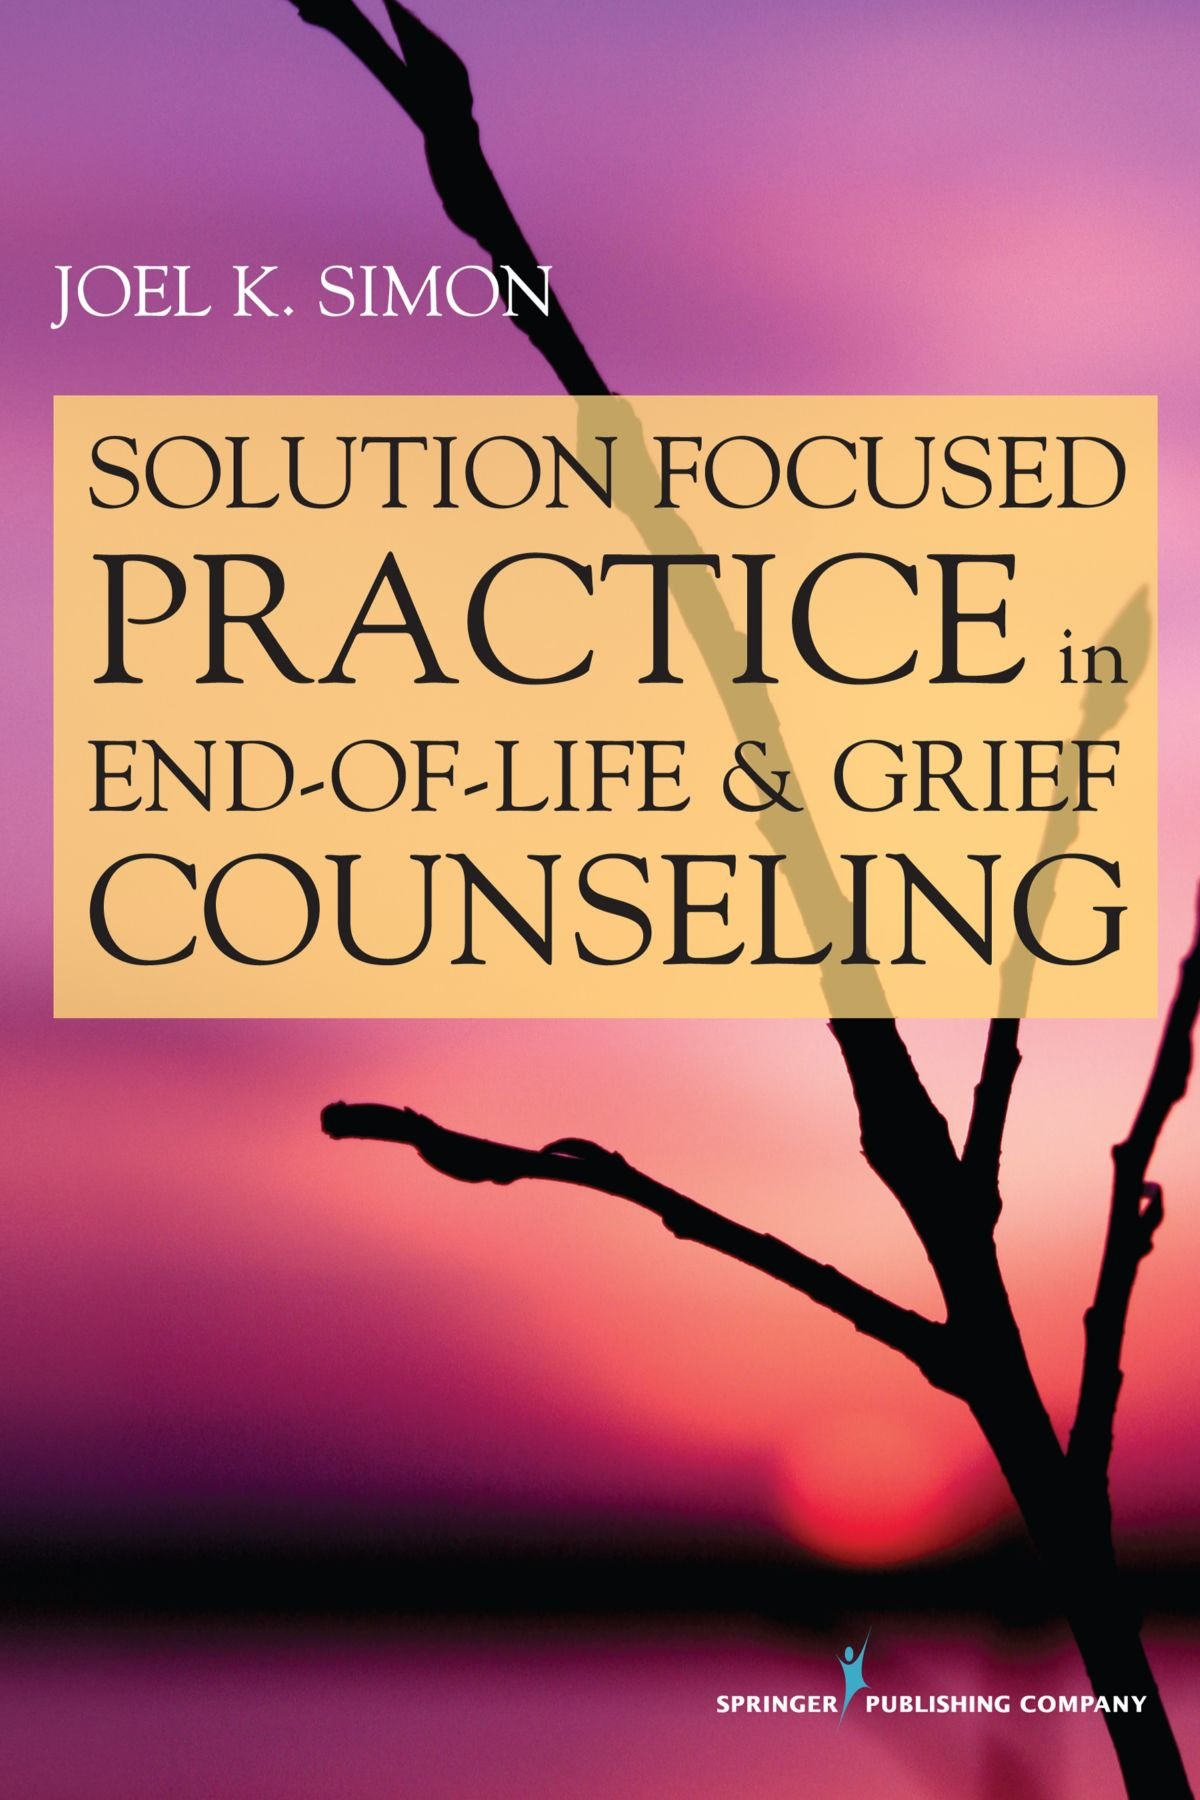 Solution Focused Practice in End-of-Life and Grief Counseling